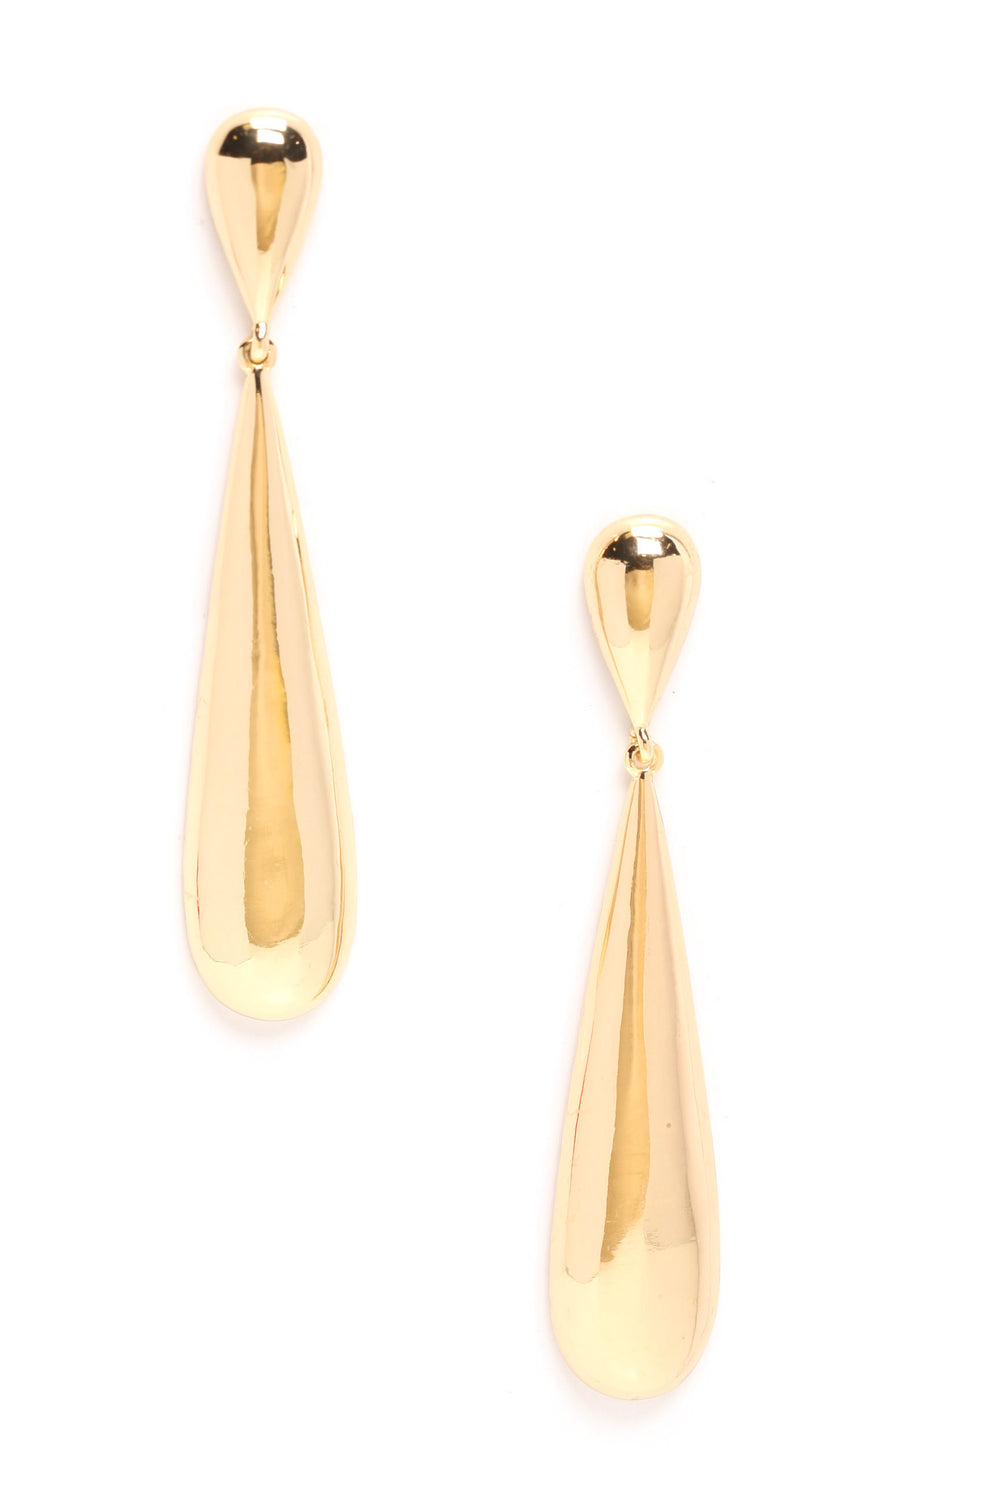 Run Me Dry Earrings - Gold